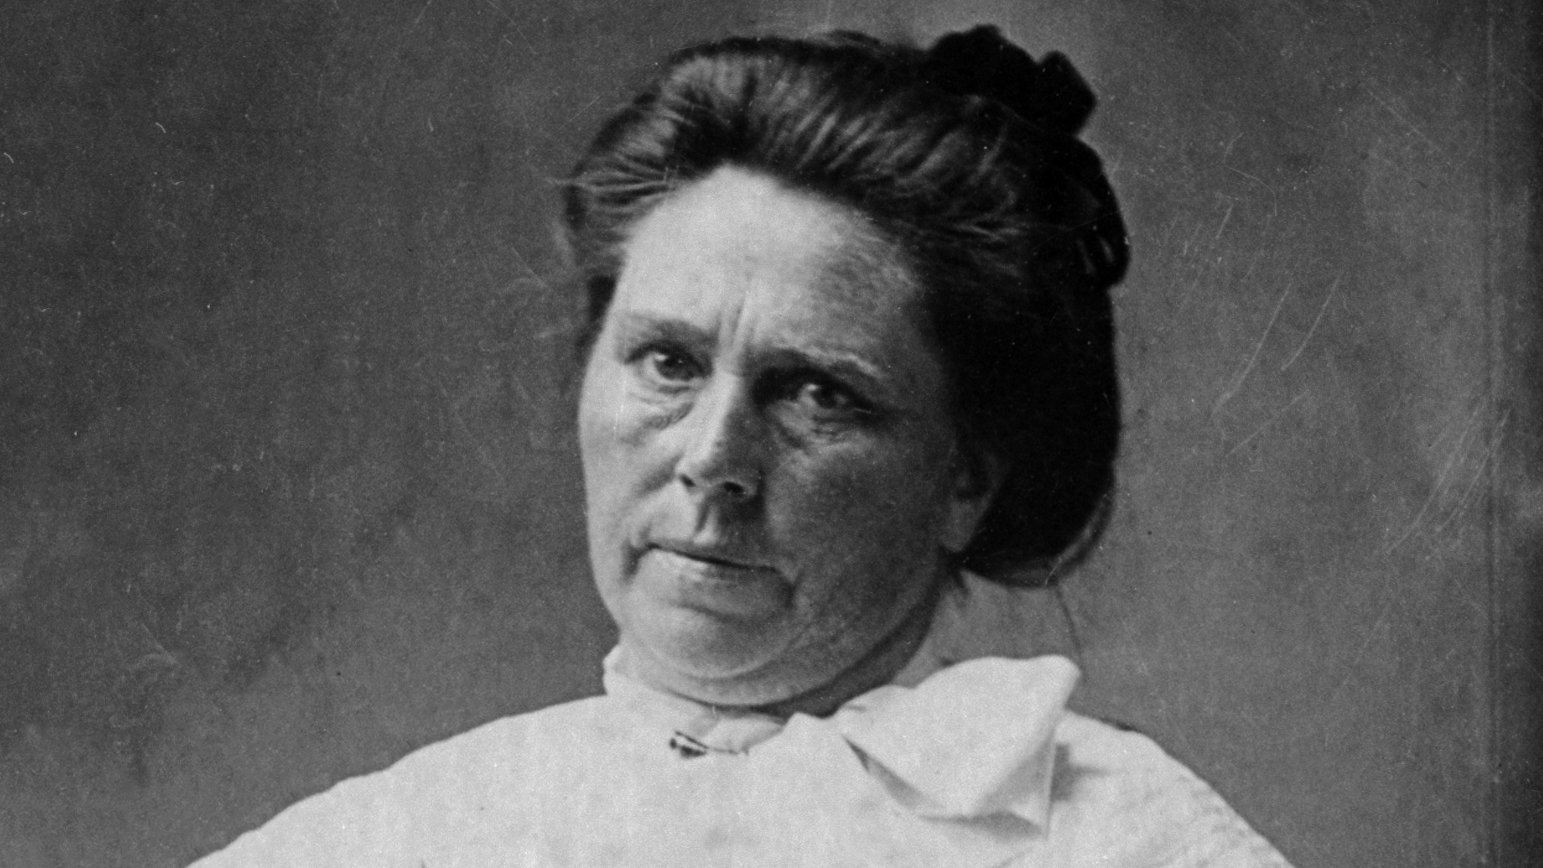 Murderer Belle Gunness Who Killed Up To 15 Men For Their Insurance Credit